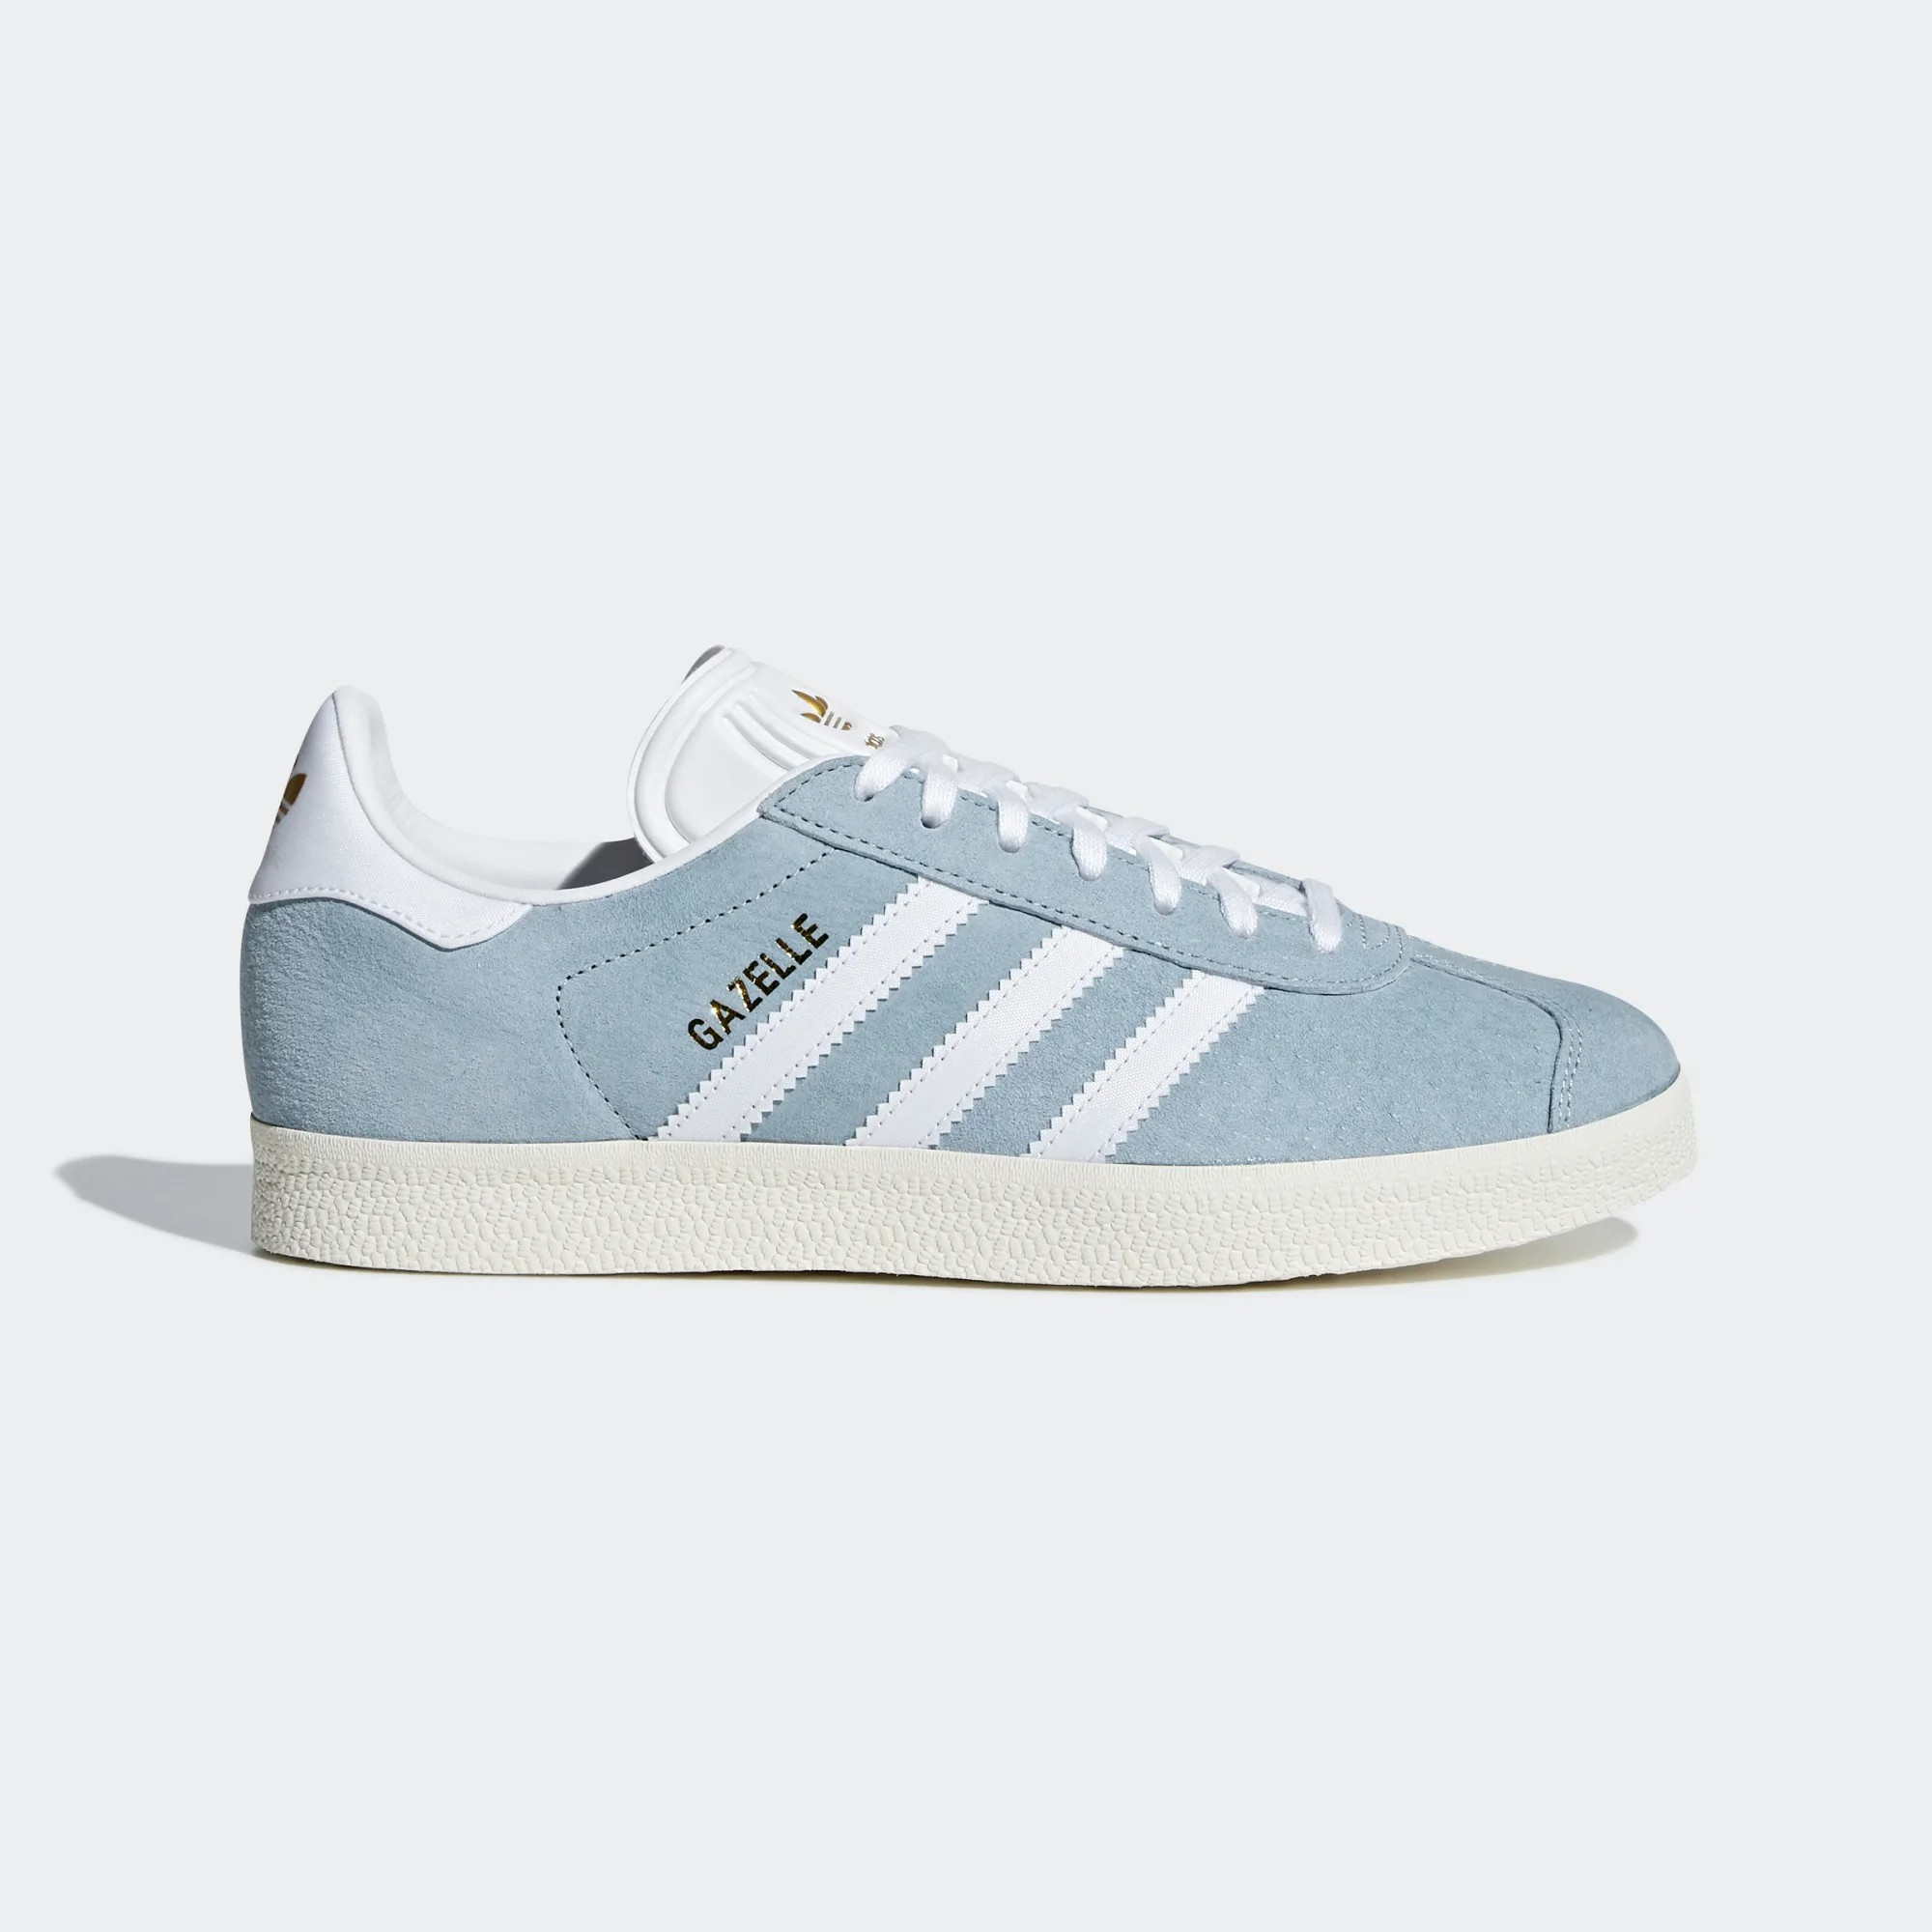 Adidas Women Gazelle Shoes Ash Blue/Cloud White CG6061